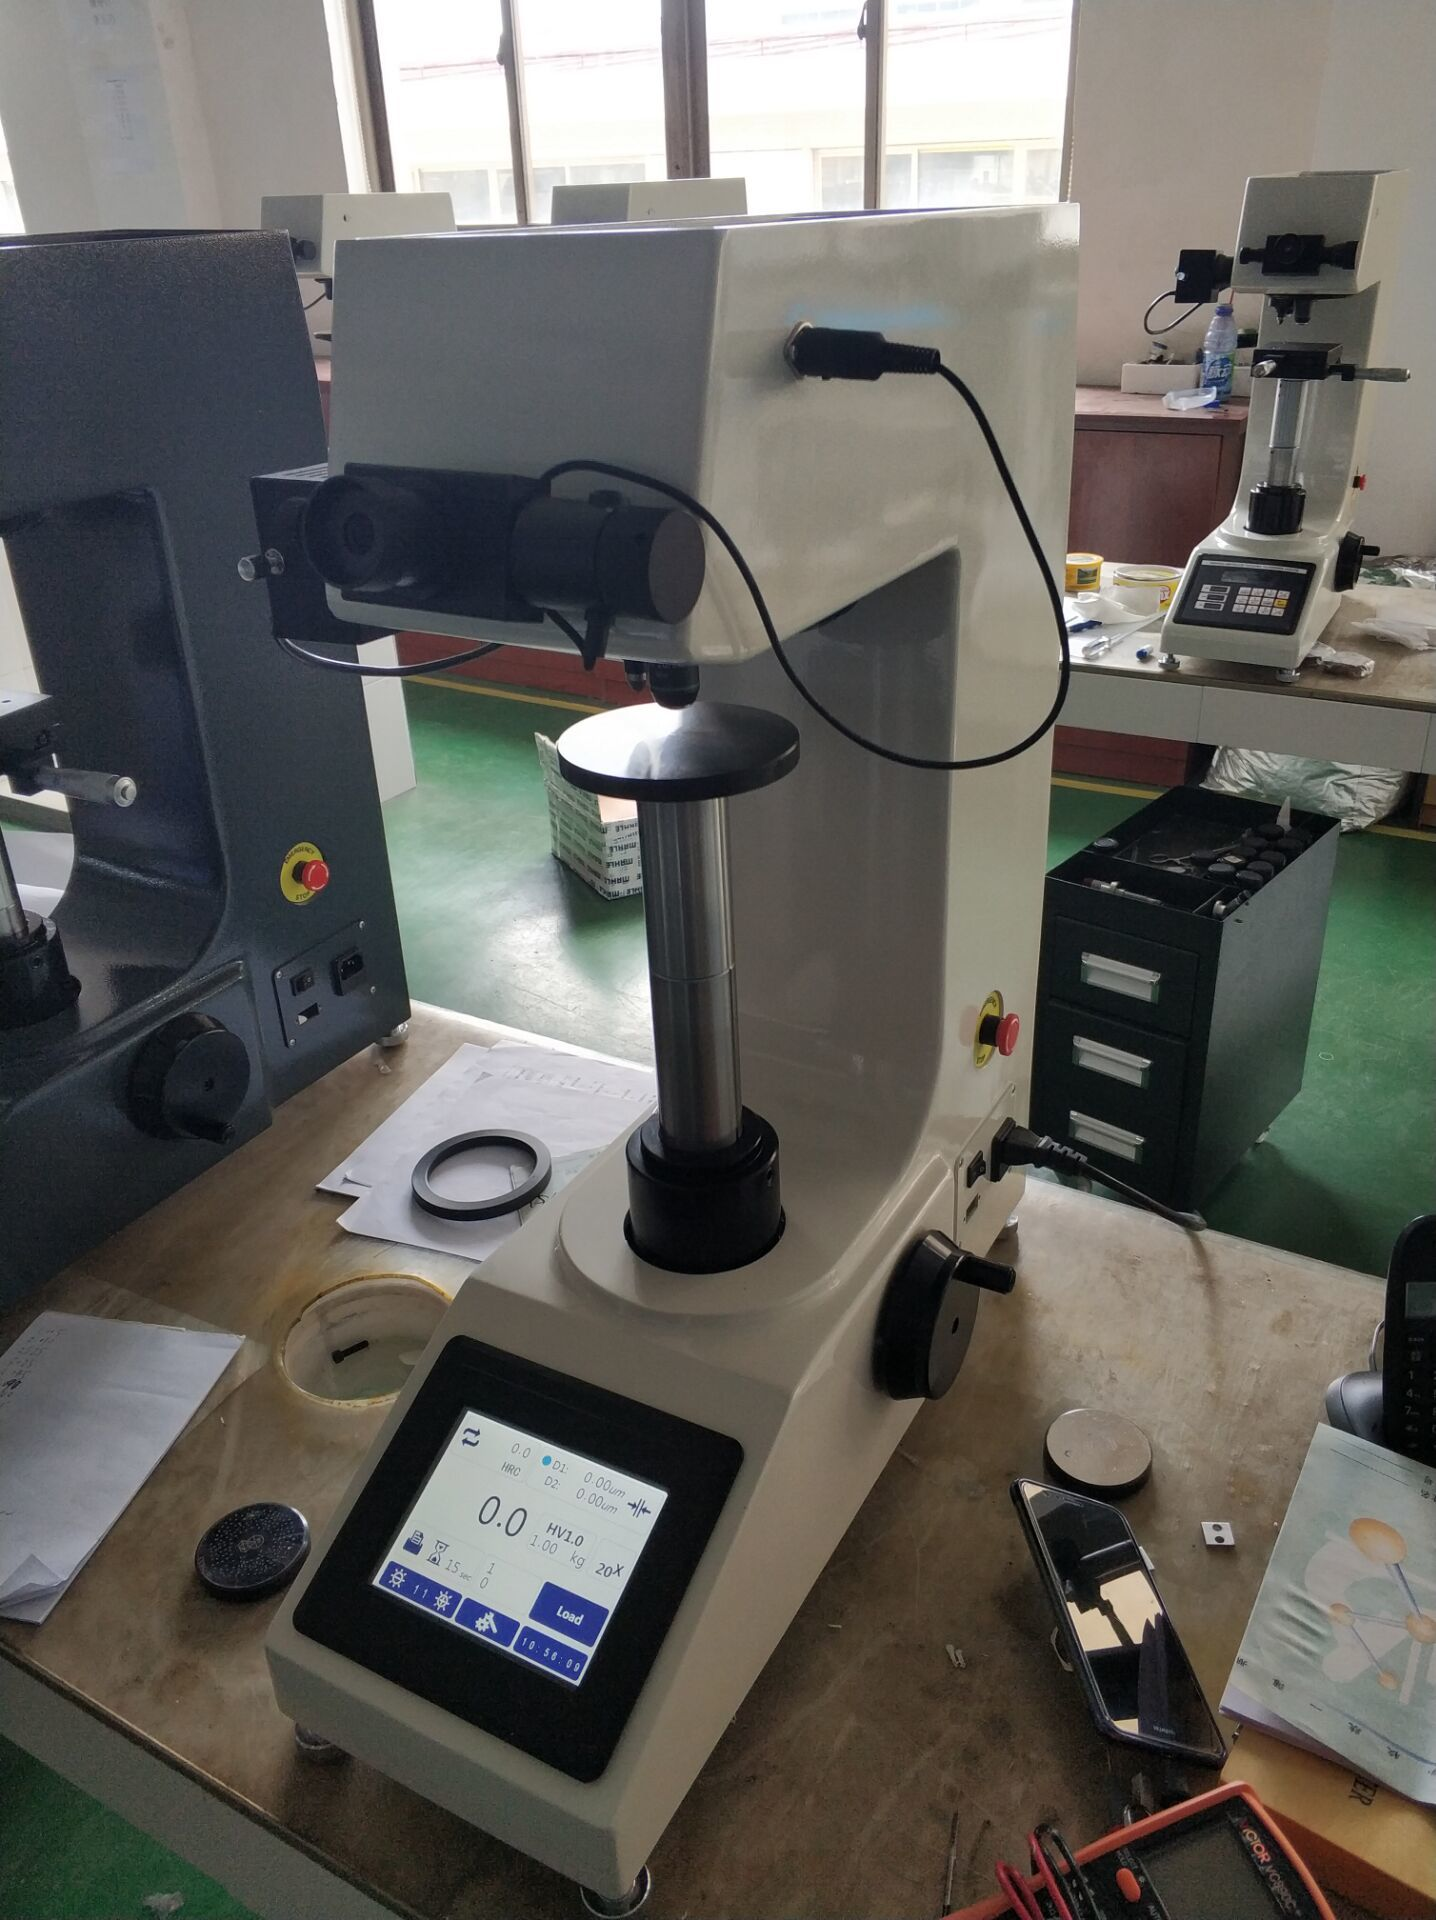 Vickers Hardness Tester Machine